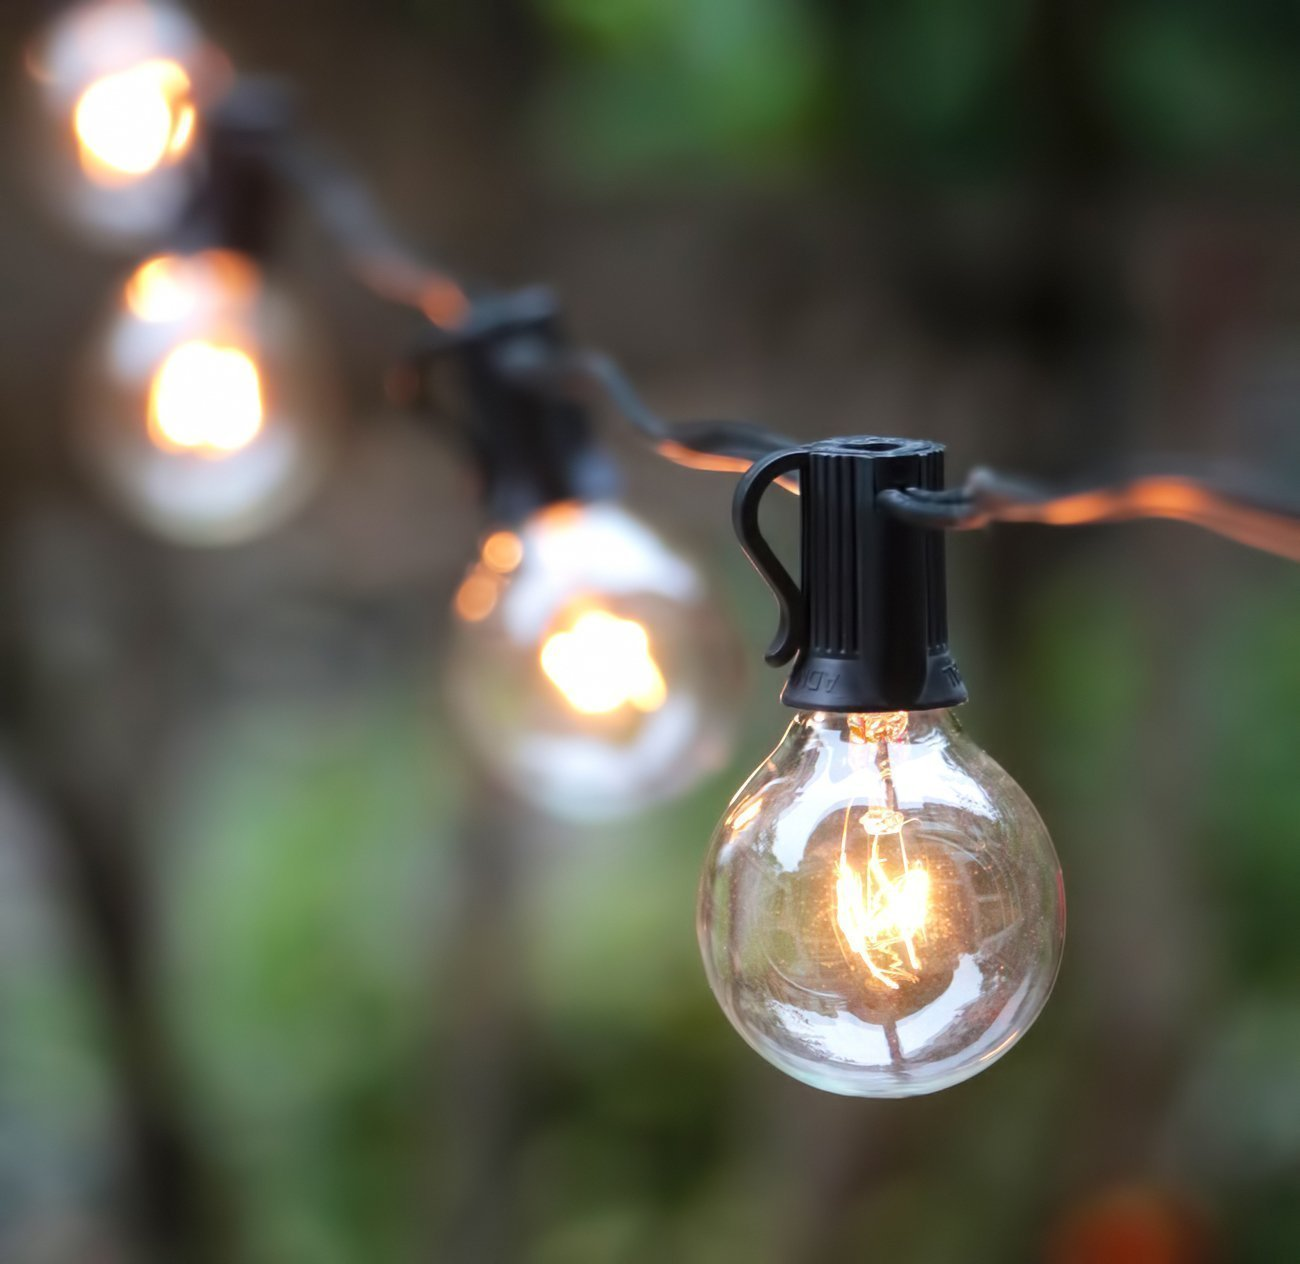 Top 25 Best Outdoor Patio Garden String Lights 2016-2017 Patio Lights on wall lights, ceiling lights, storage shed lights, patio tables, outdoor lighting, outdoor lights, patio furniture covers, deck lights, patio cushions, landscape lights, porch swings, patio heaters, teak patio furniture, security lights, carport lights, awning lights, patio chairs, light bulbs, patio sets, patio enclosures, porch lights, pergola lights, pool lights, patio furniture cushions, sidewalk lights, dock lights, patio furniture, outdoor furniture, beautiful street lights, flood lights, table lights,